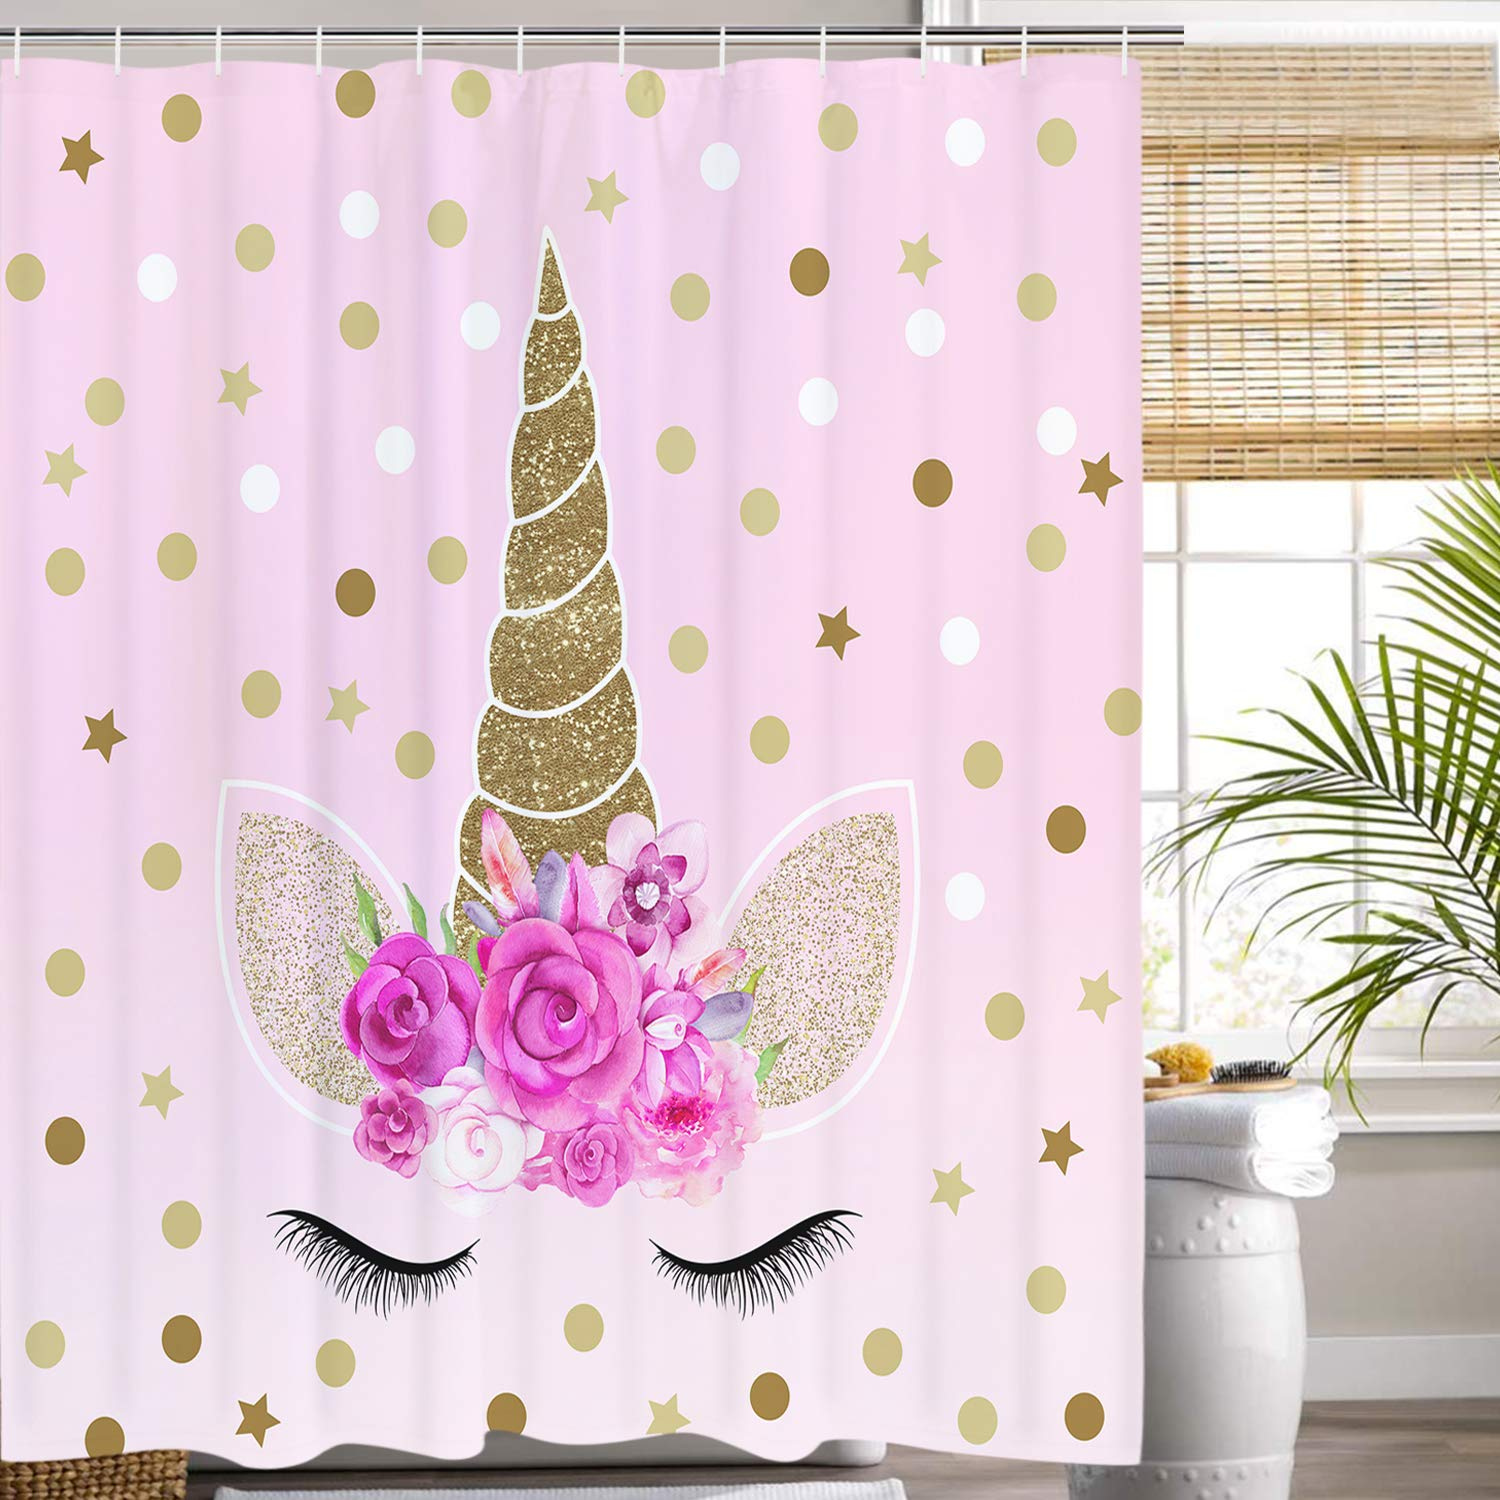 Romeooera Unicorn Shower Curtains Cute Pink Floral Magic Head Twinkle Star Curtain Mildewproof Waterproof With Hooks For